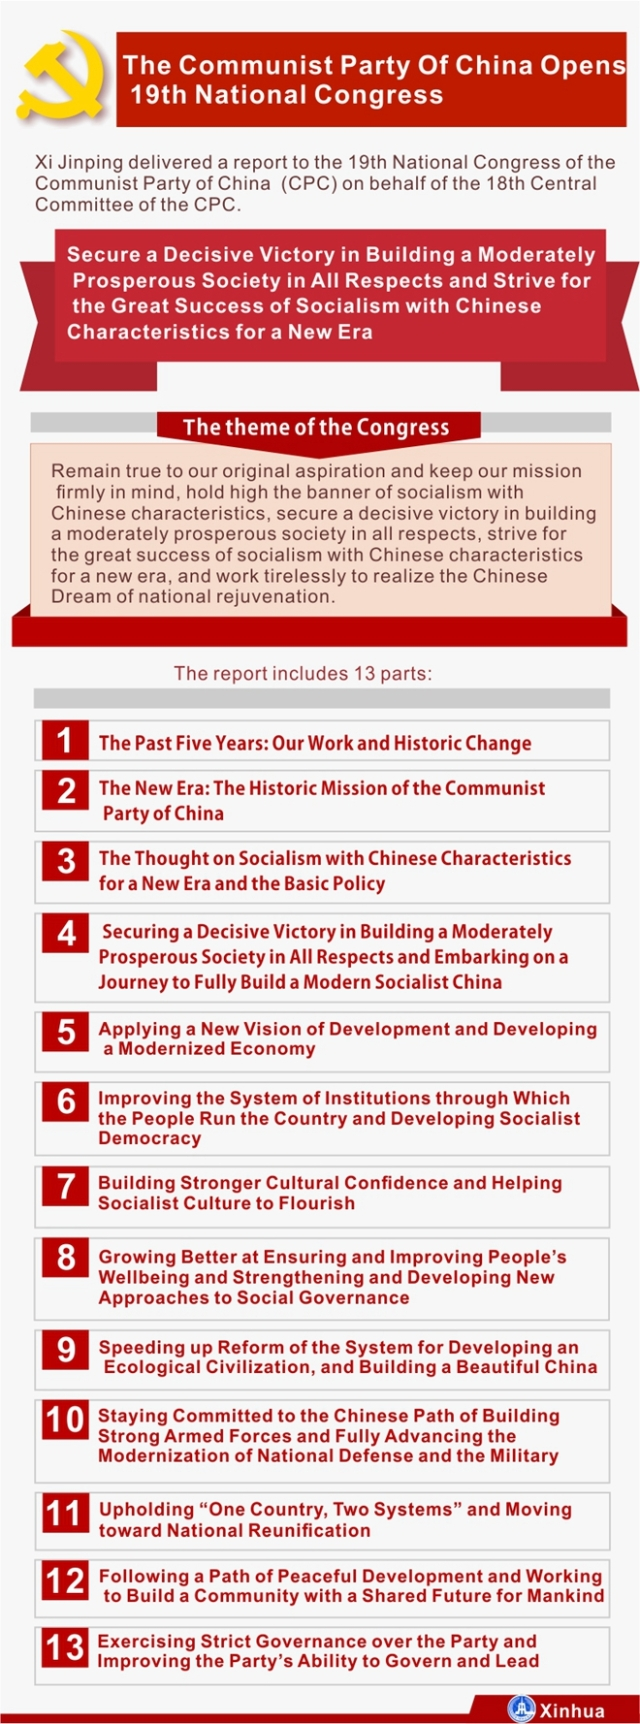 [GRAPHICS]CHINA-CPC NATIONAL CONGRESS-REPORT-HEADLINES